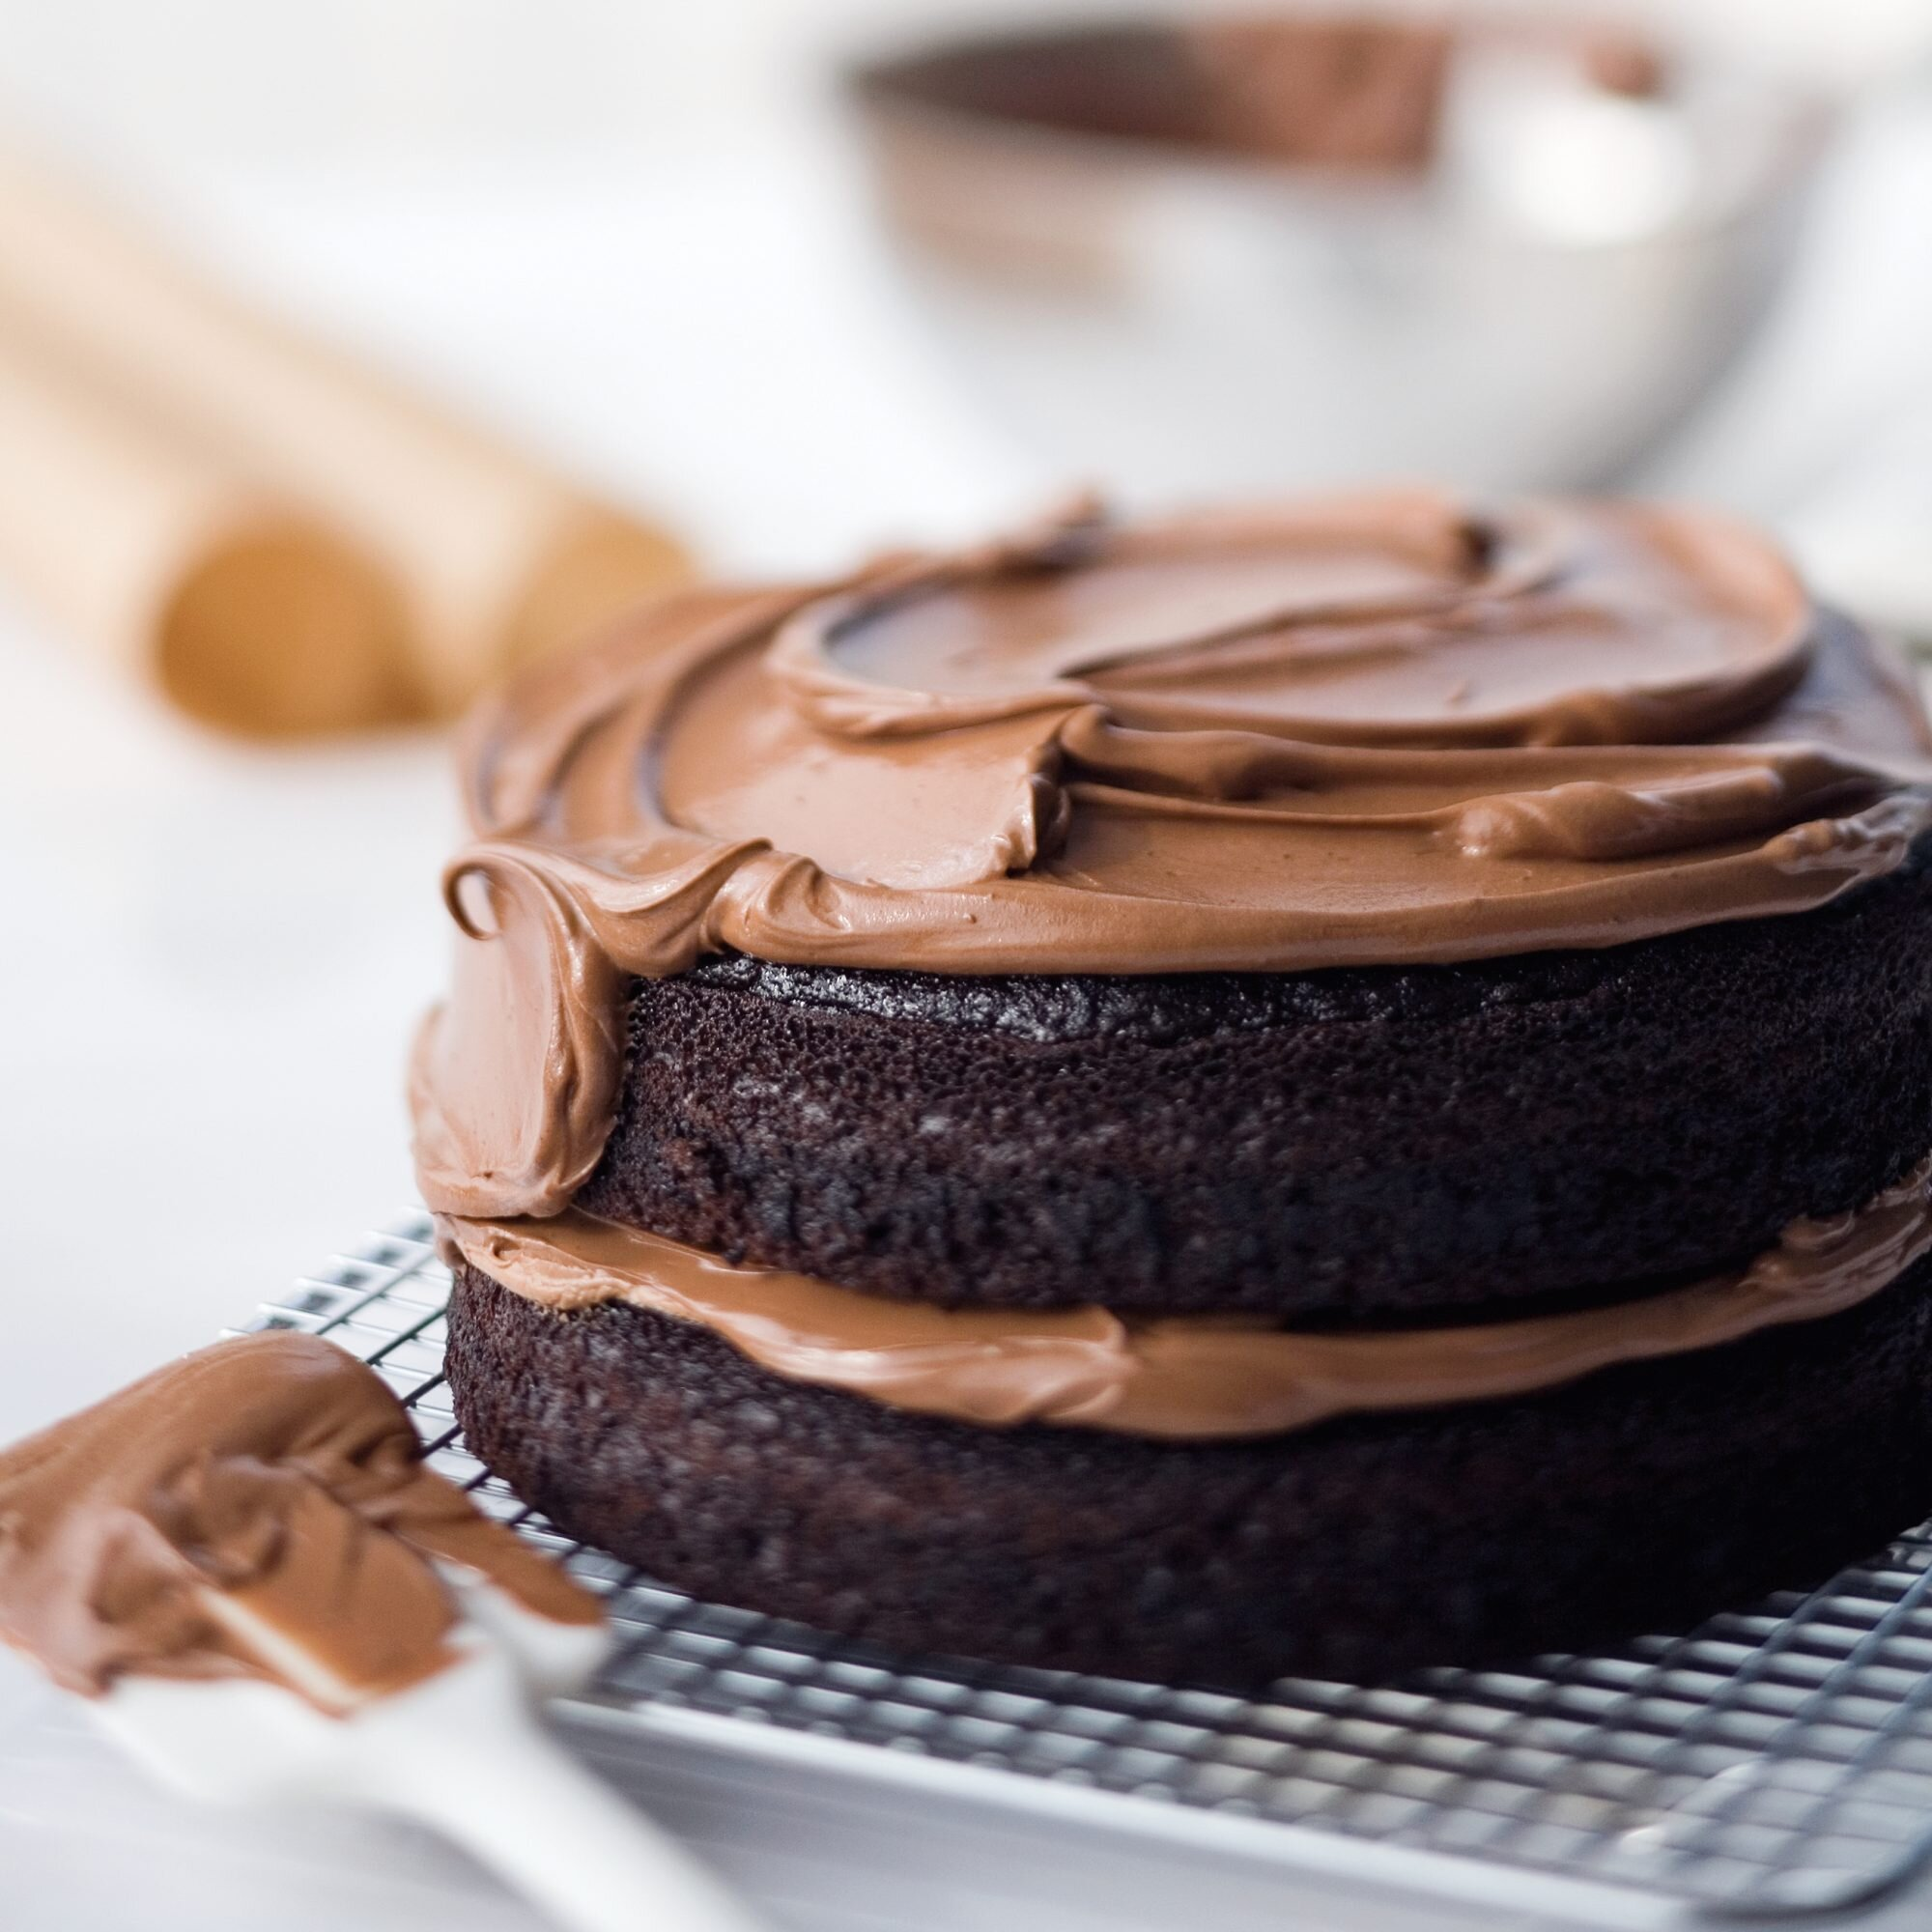 Double Chocolate Layer Cake Recipe Ina Garten Food Wine,How To Clean A Kitchen Faucet Sprayer